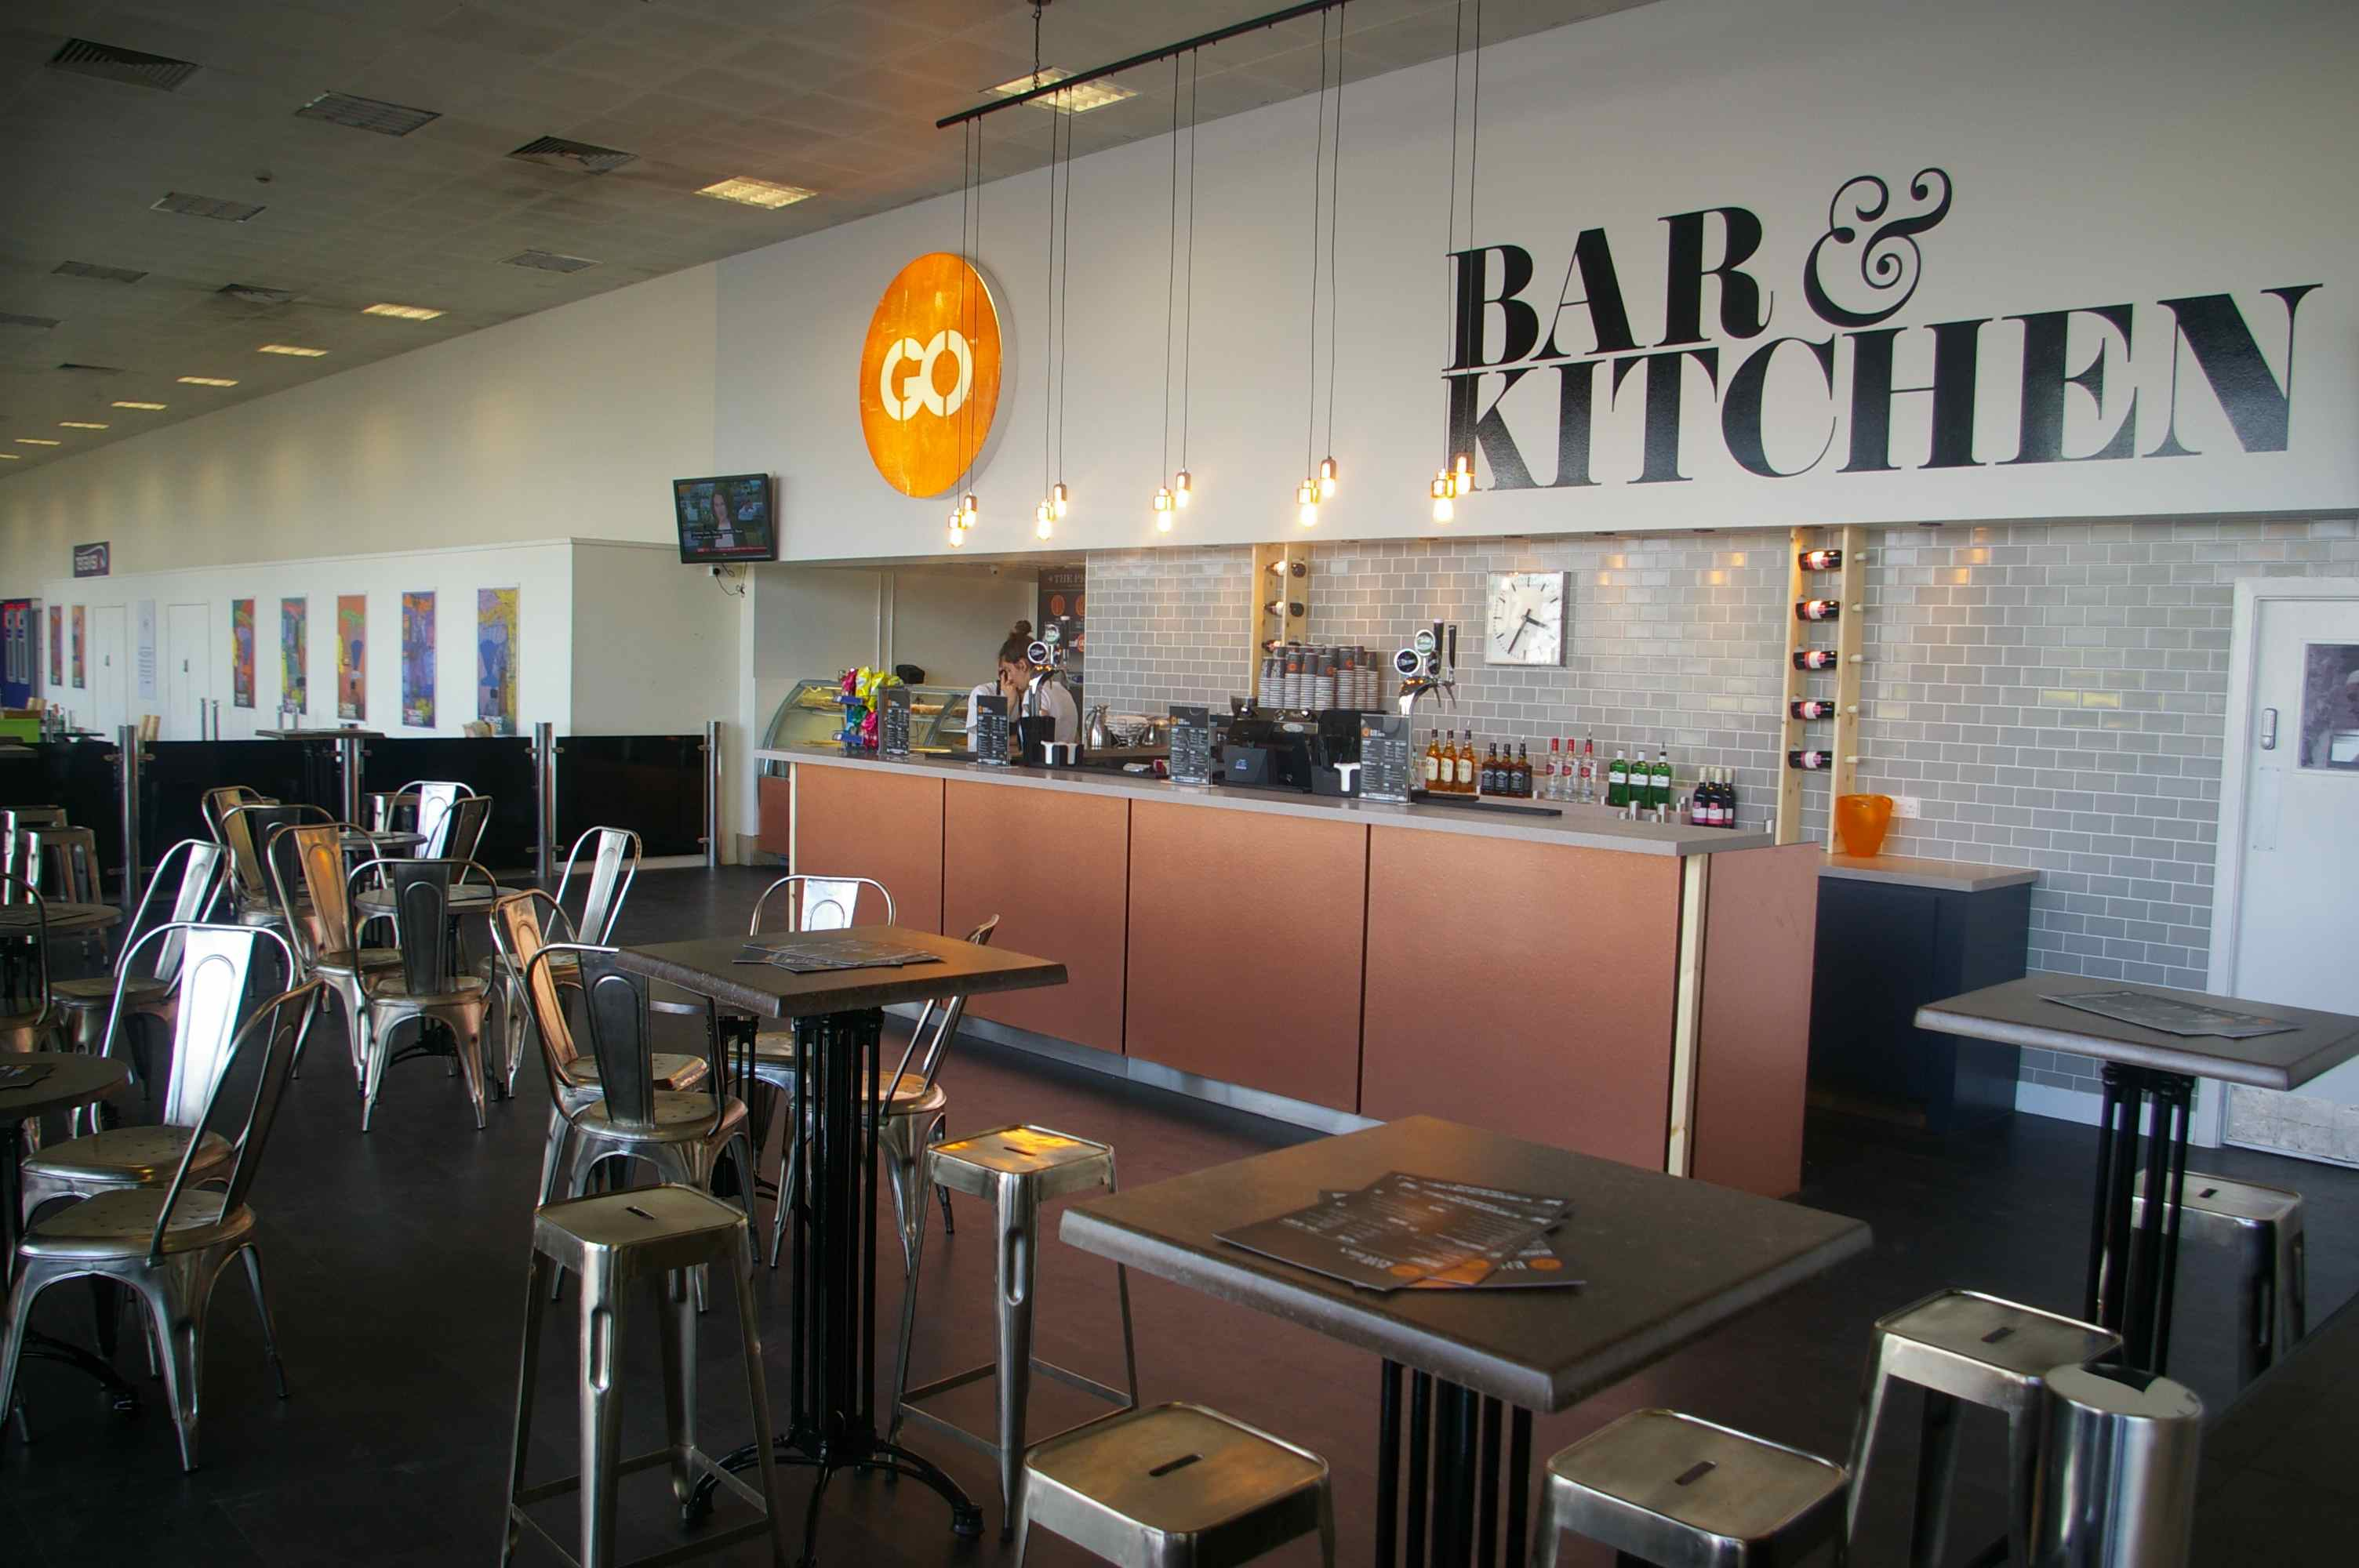 go bar and kitchen john lennon airport liverpool